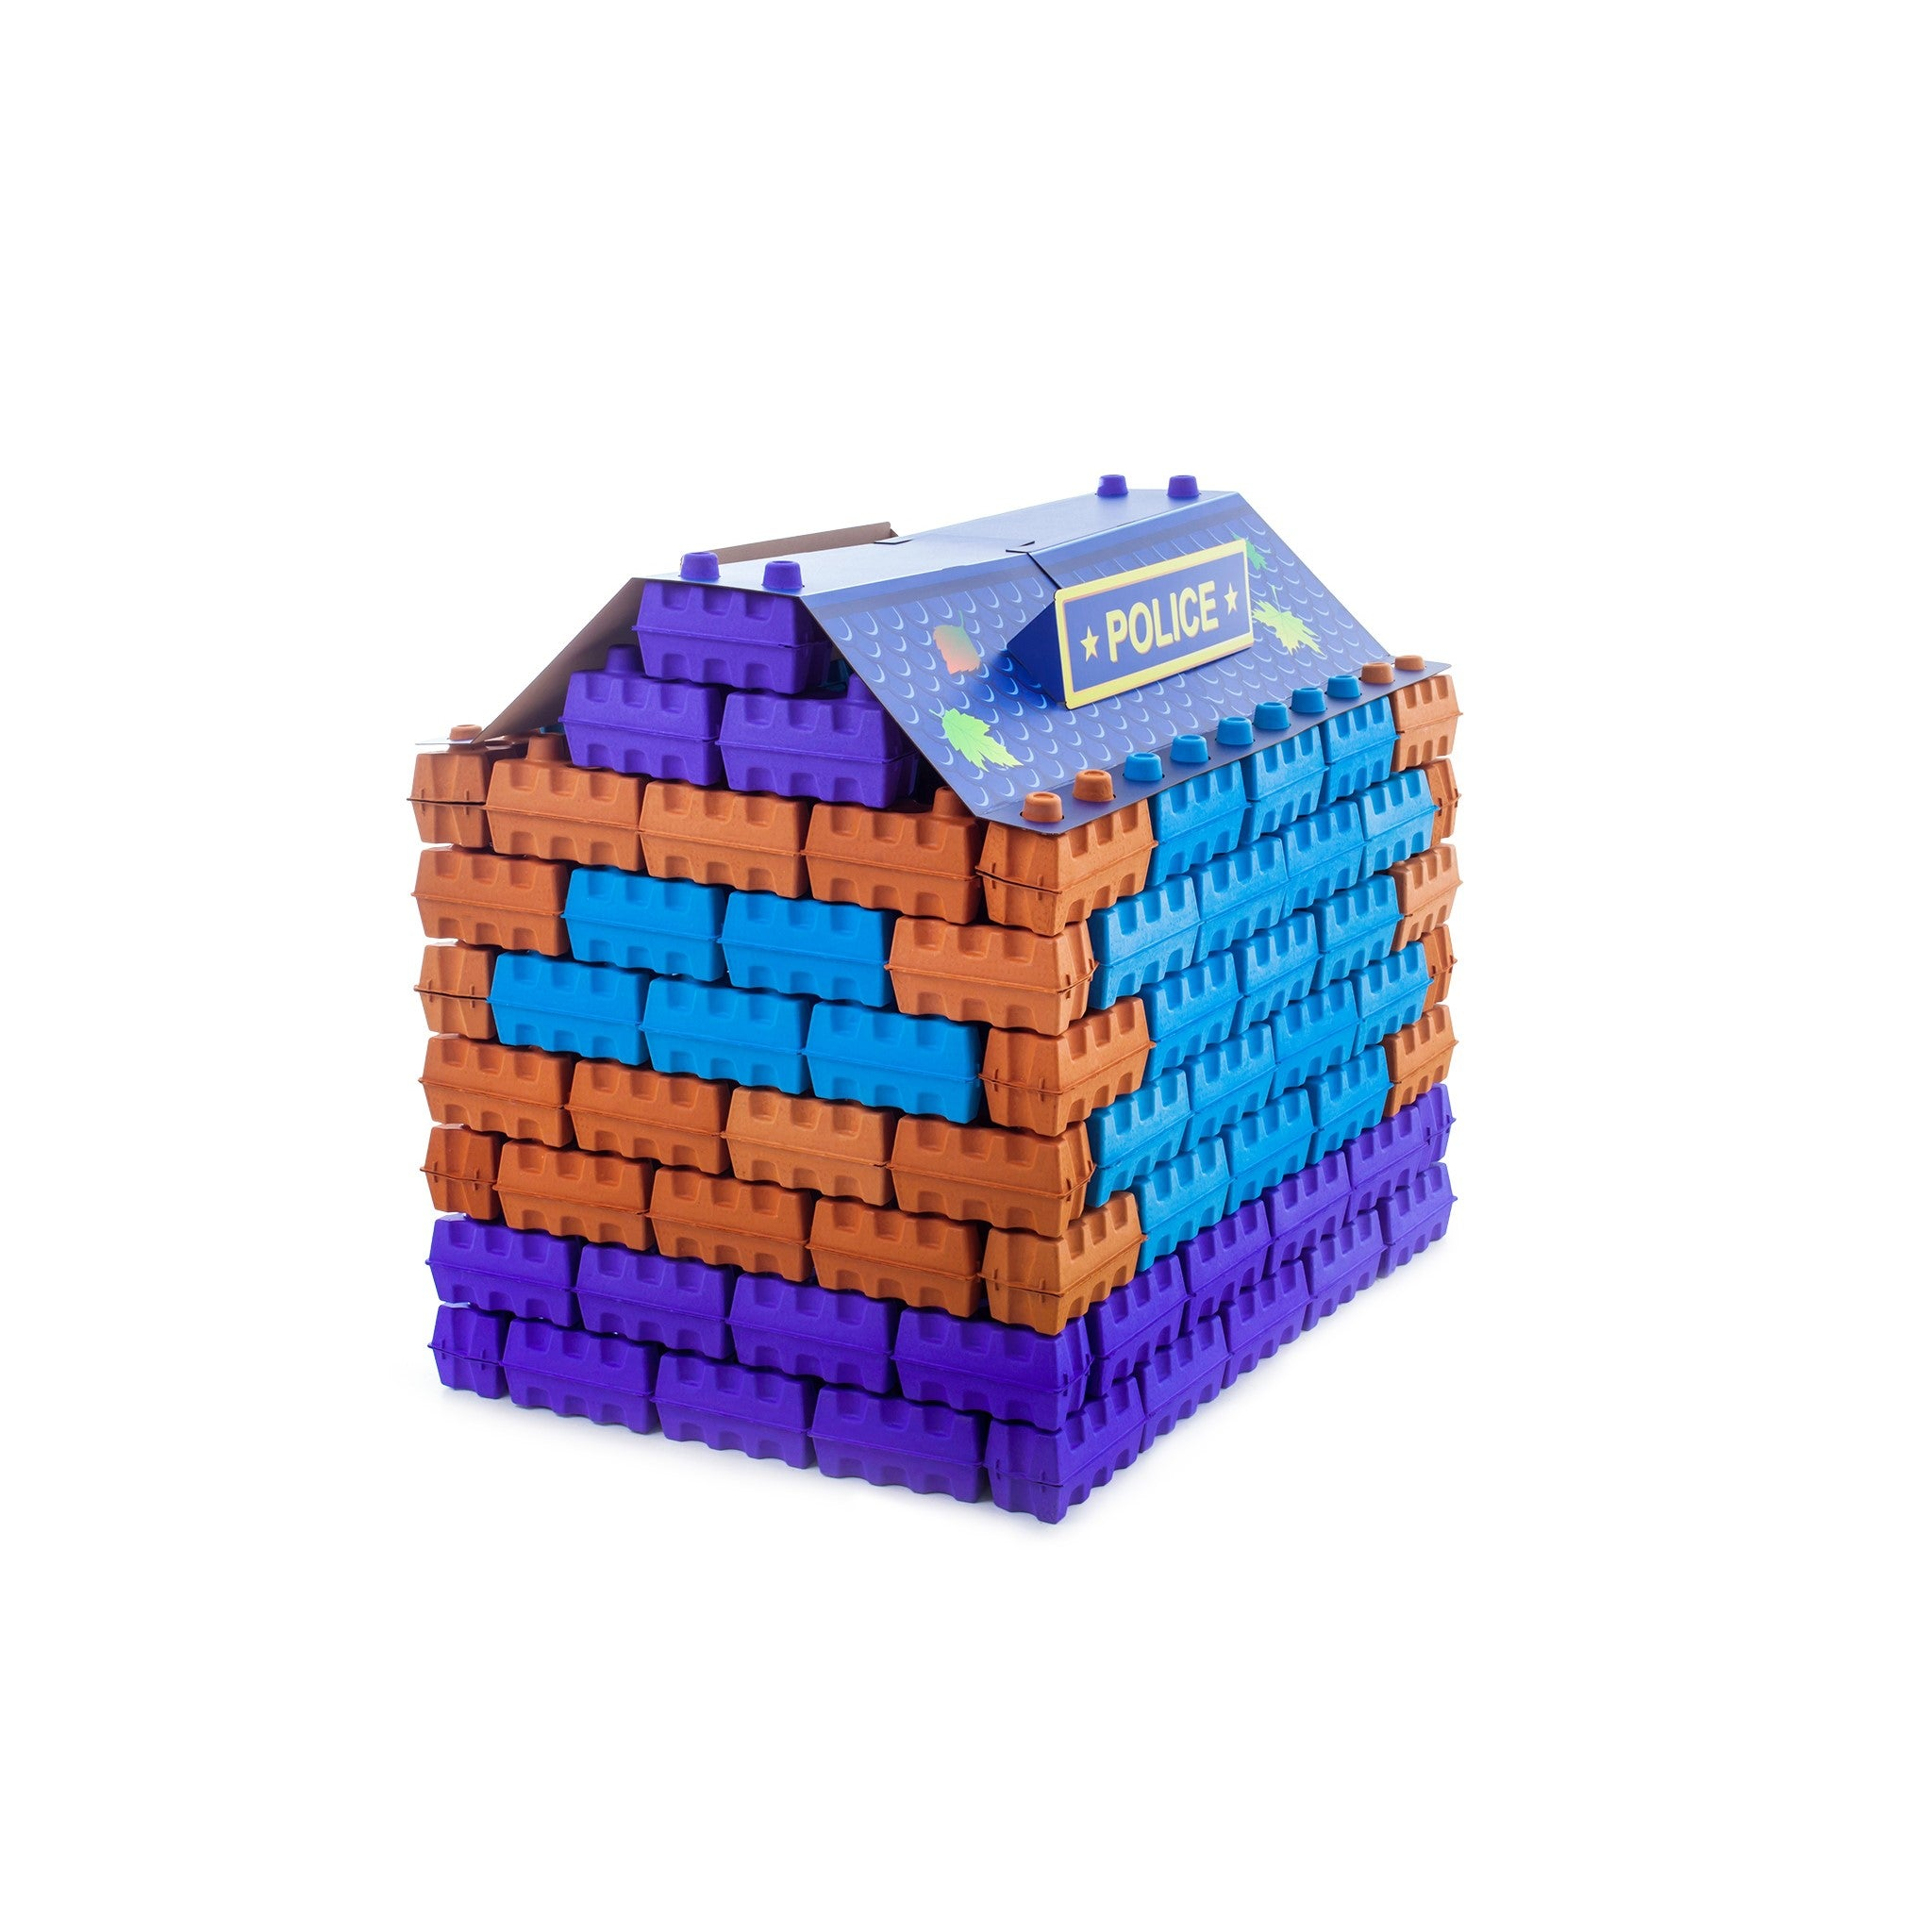 PAGL - 100% safe and eco-friendly cardboard buildings bricks for kids.